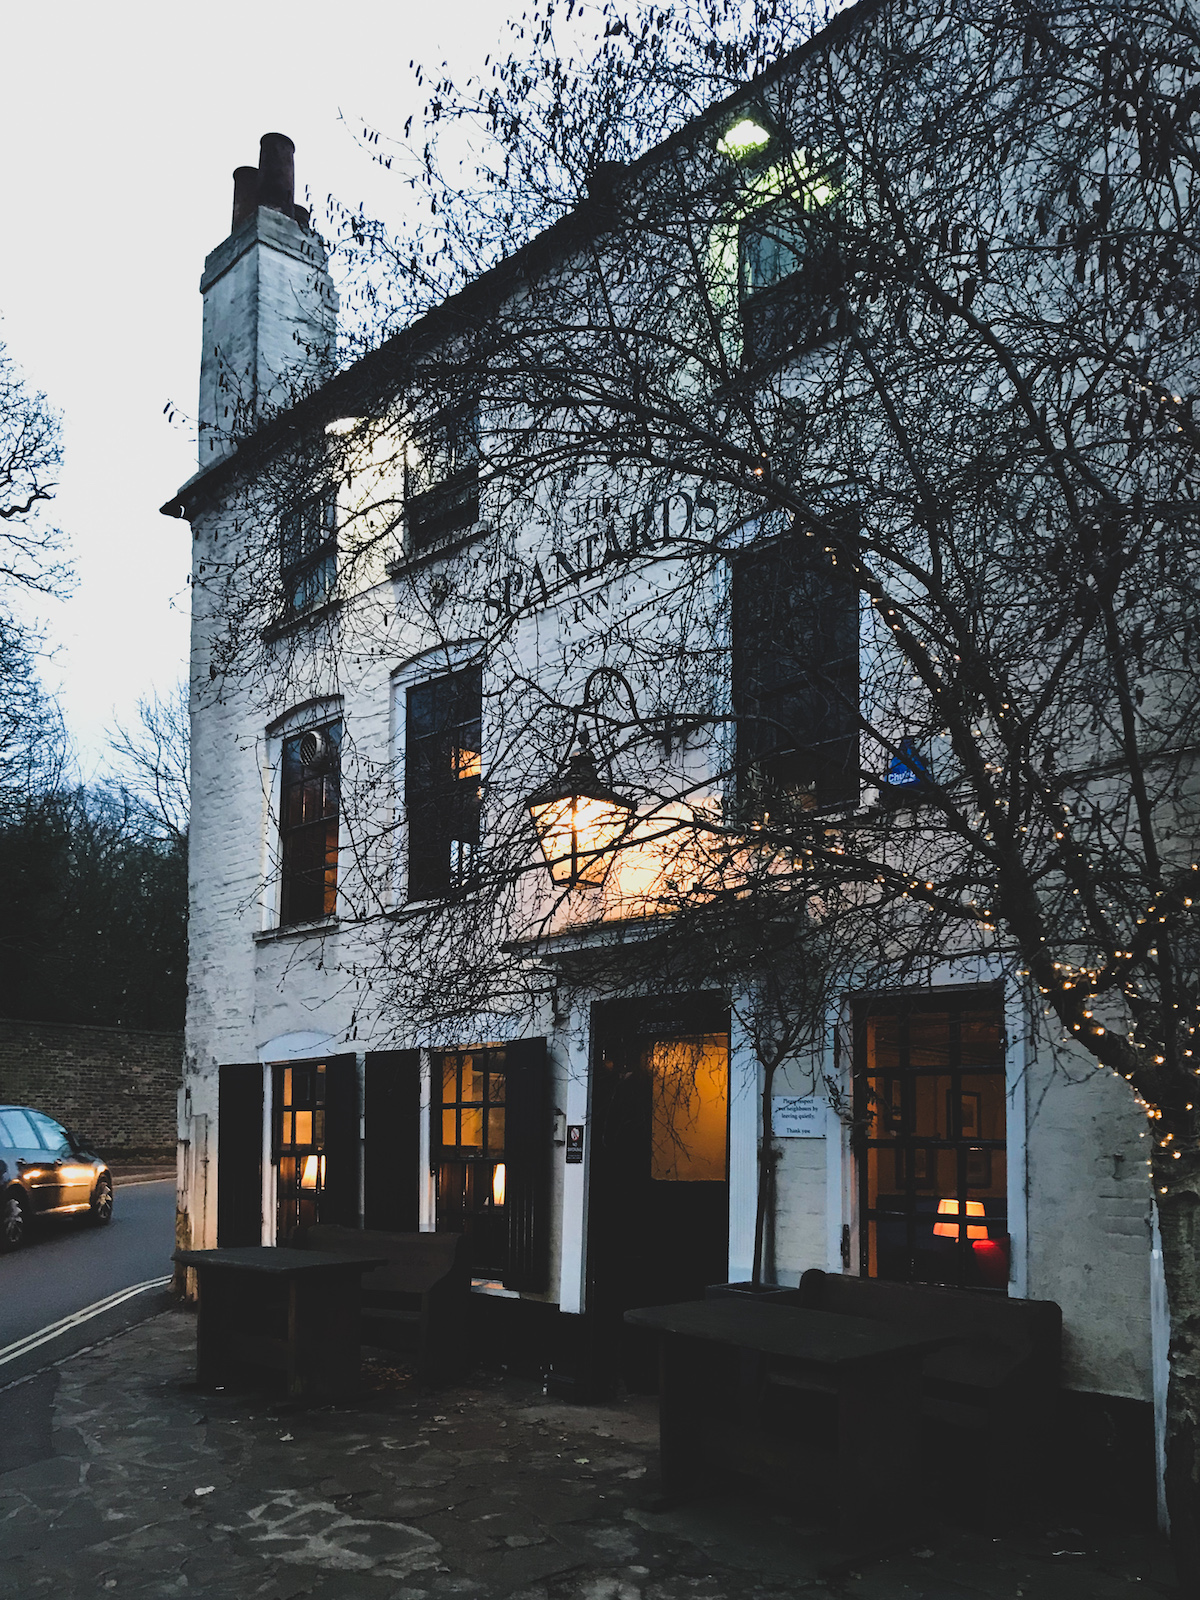 a wintery spaniards inn, north london